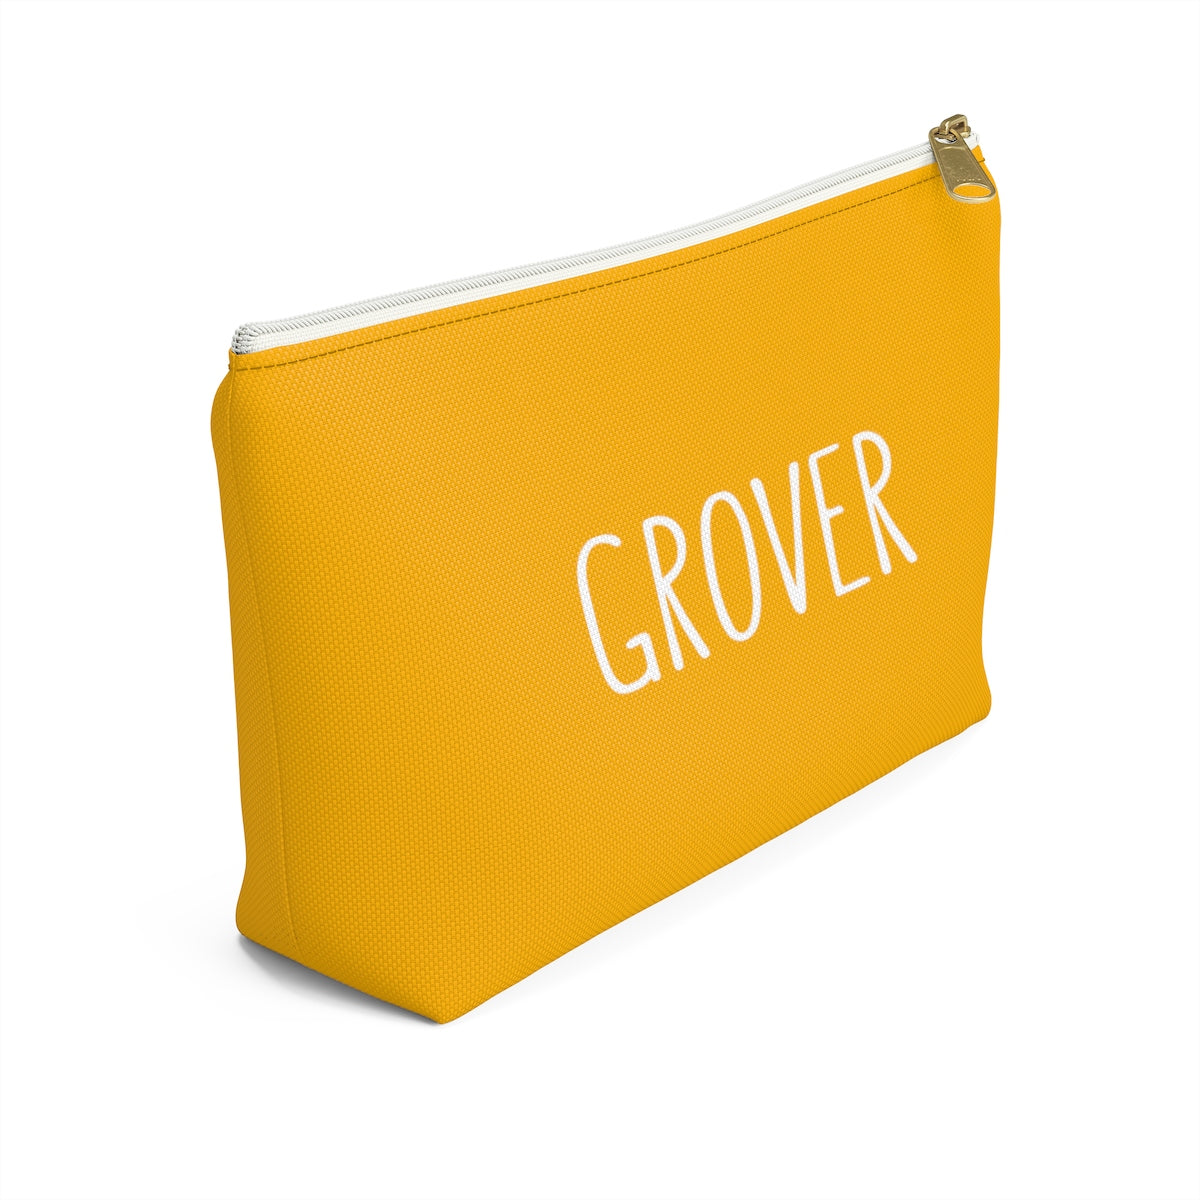 Grover Accessory Bag: Citrus